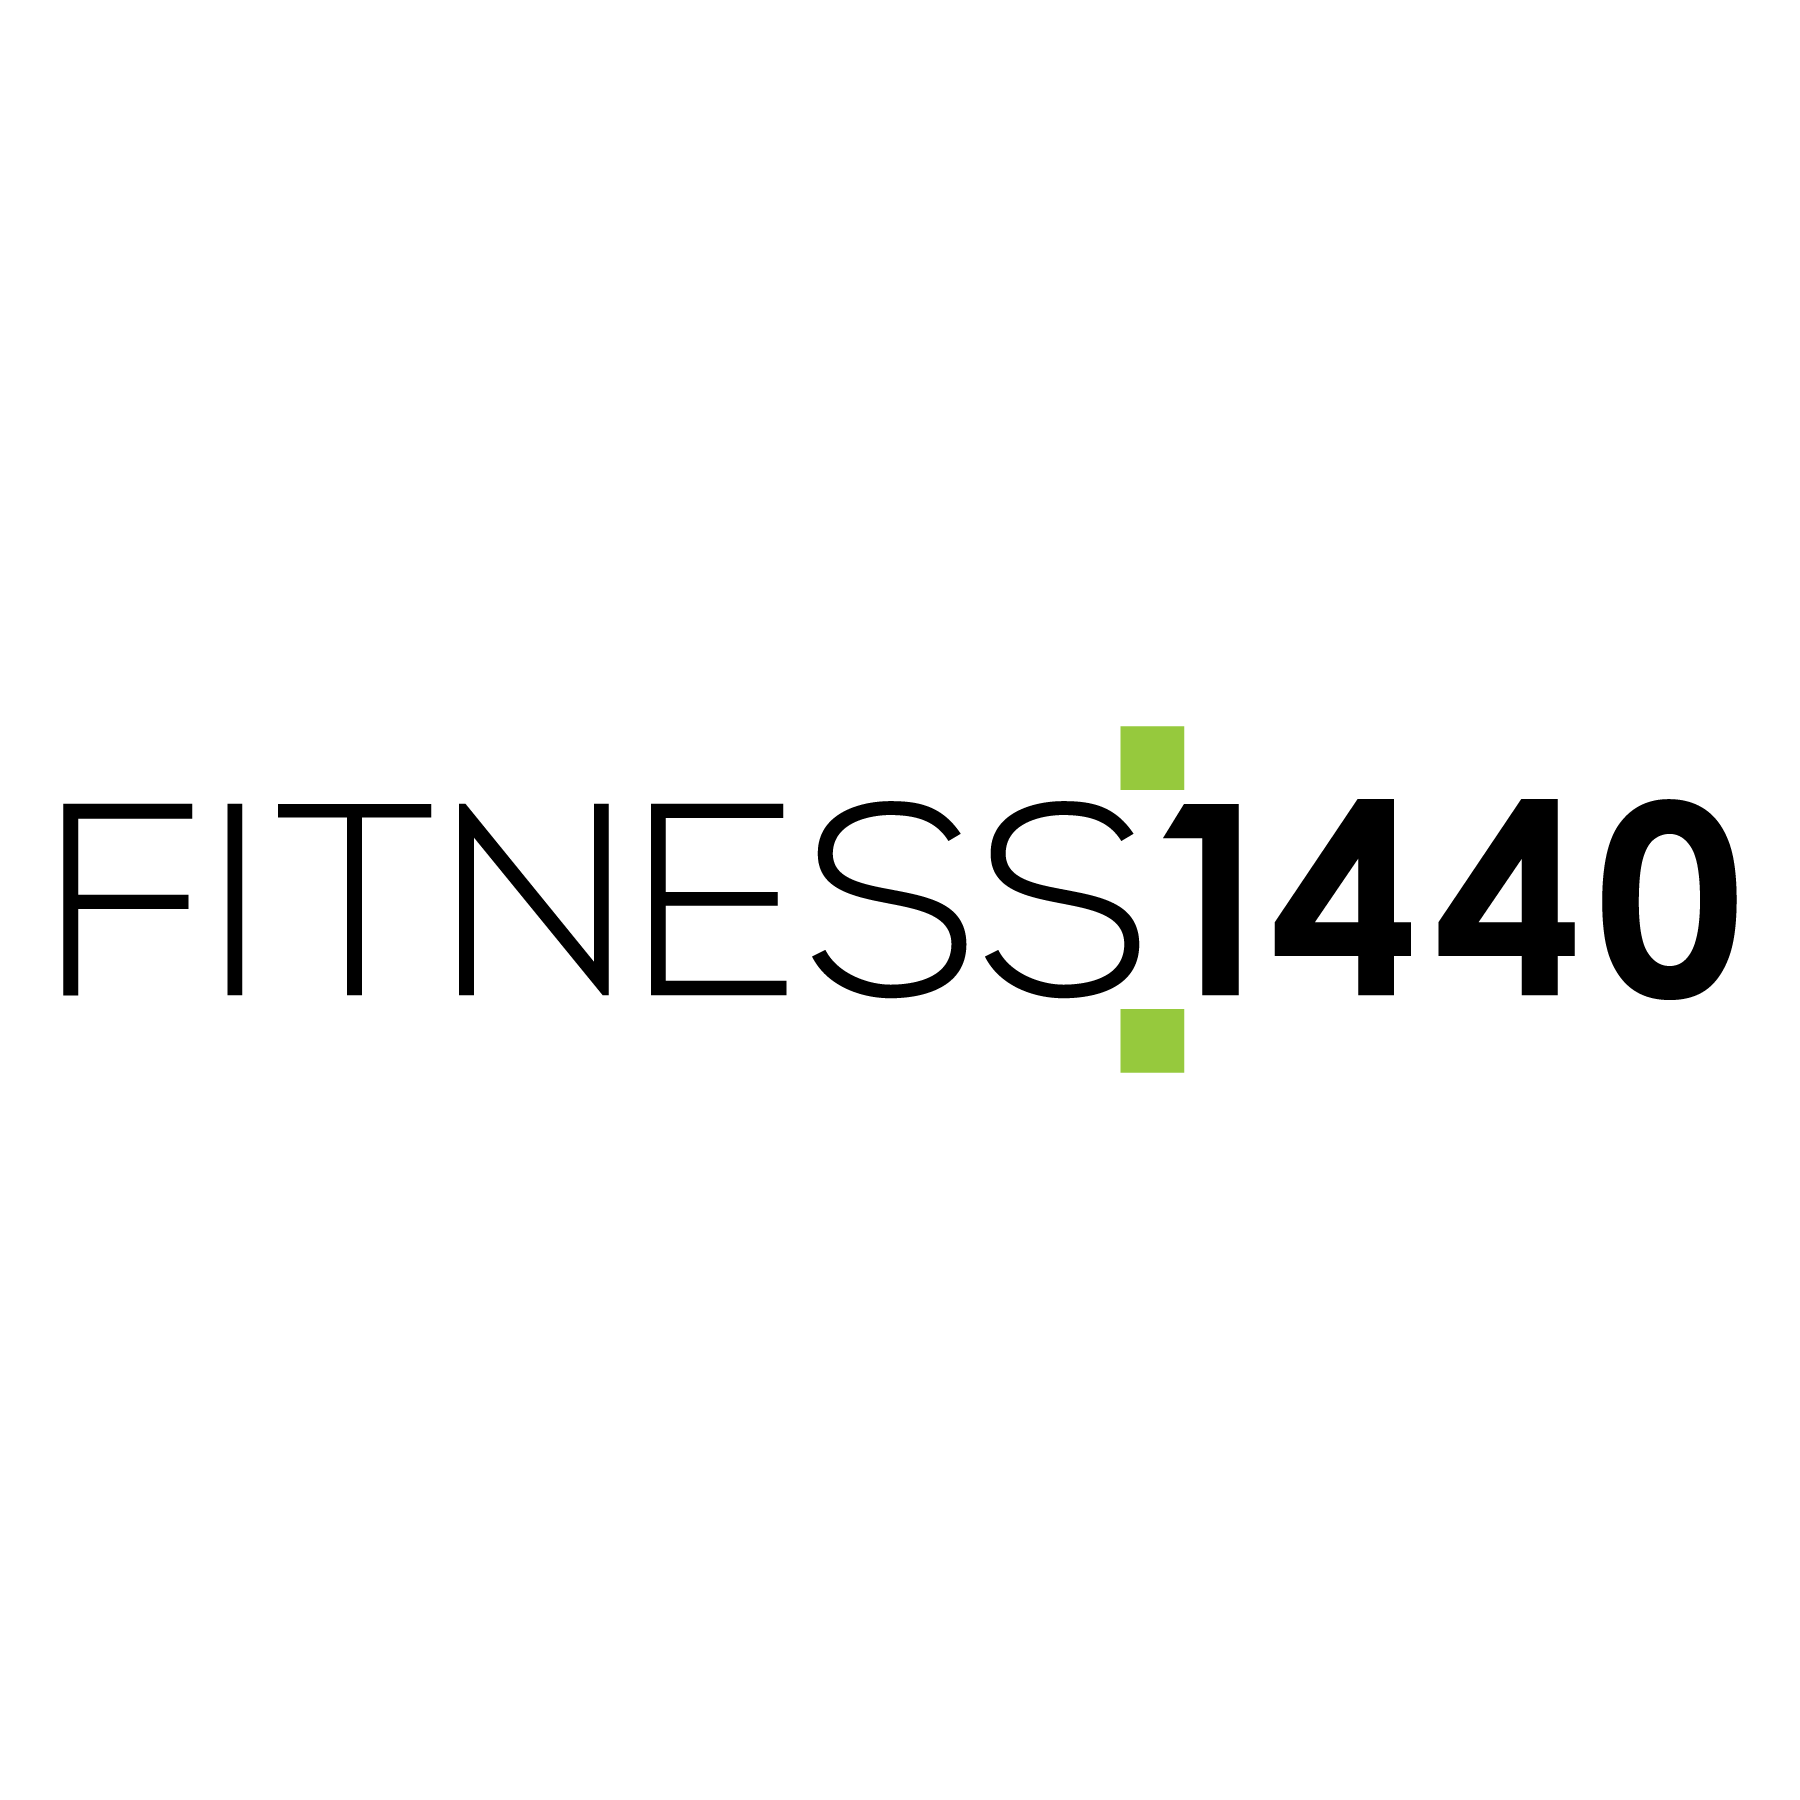 Fitness:1440 Martin - Martin, TN - Health Clubs & Gyms